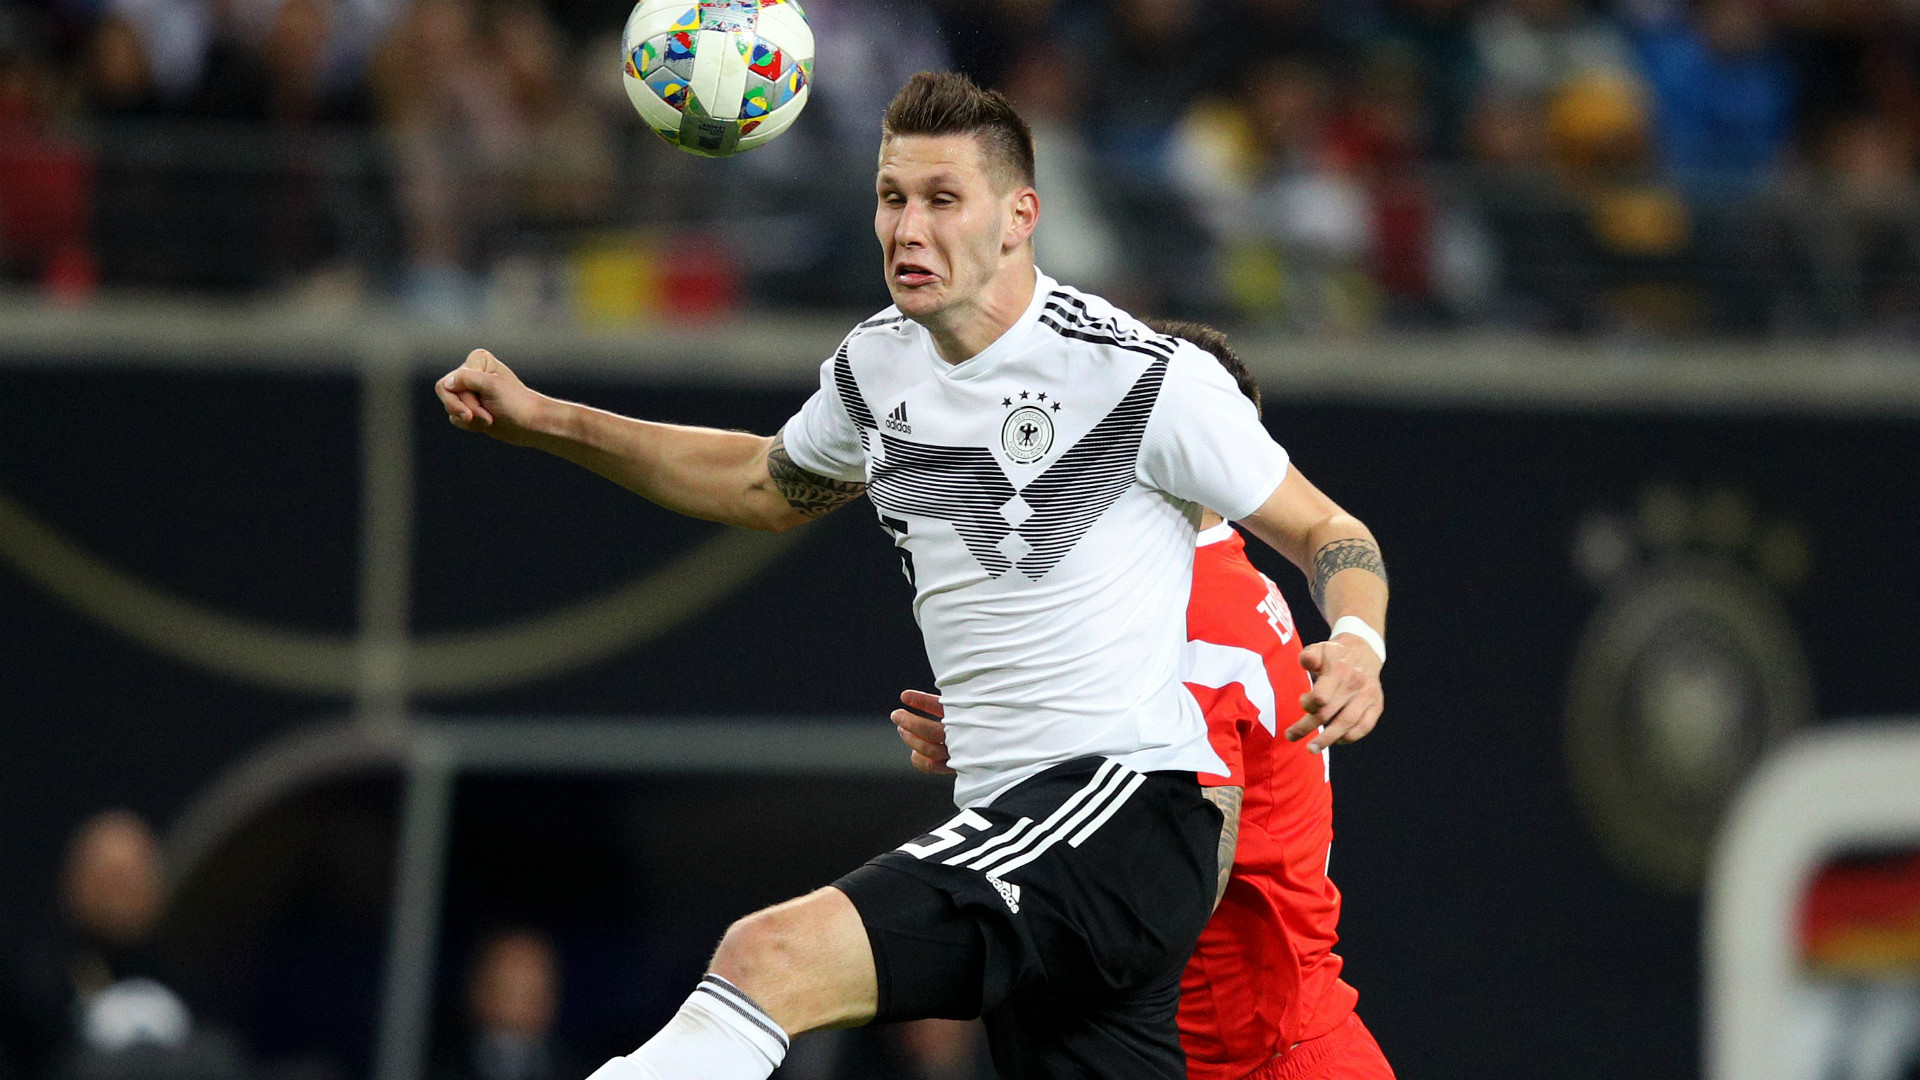 NIKLAS SÜLE GERMANY